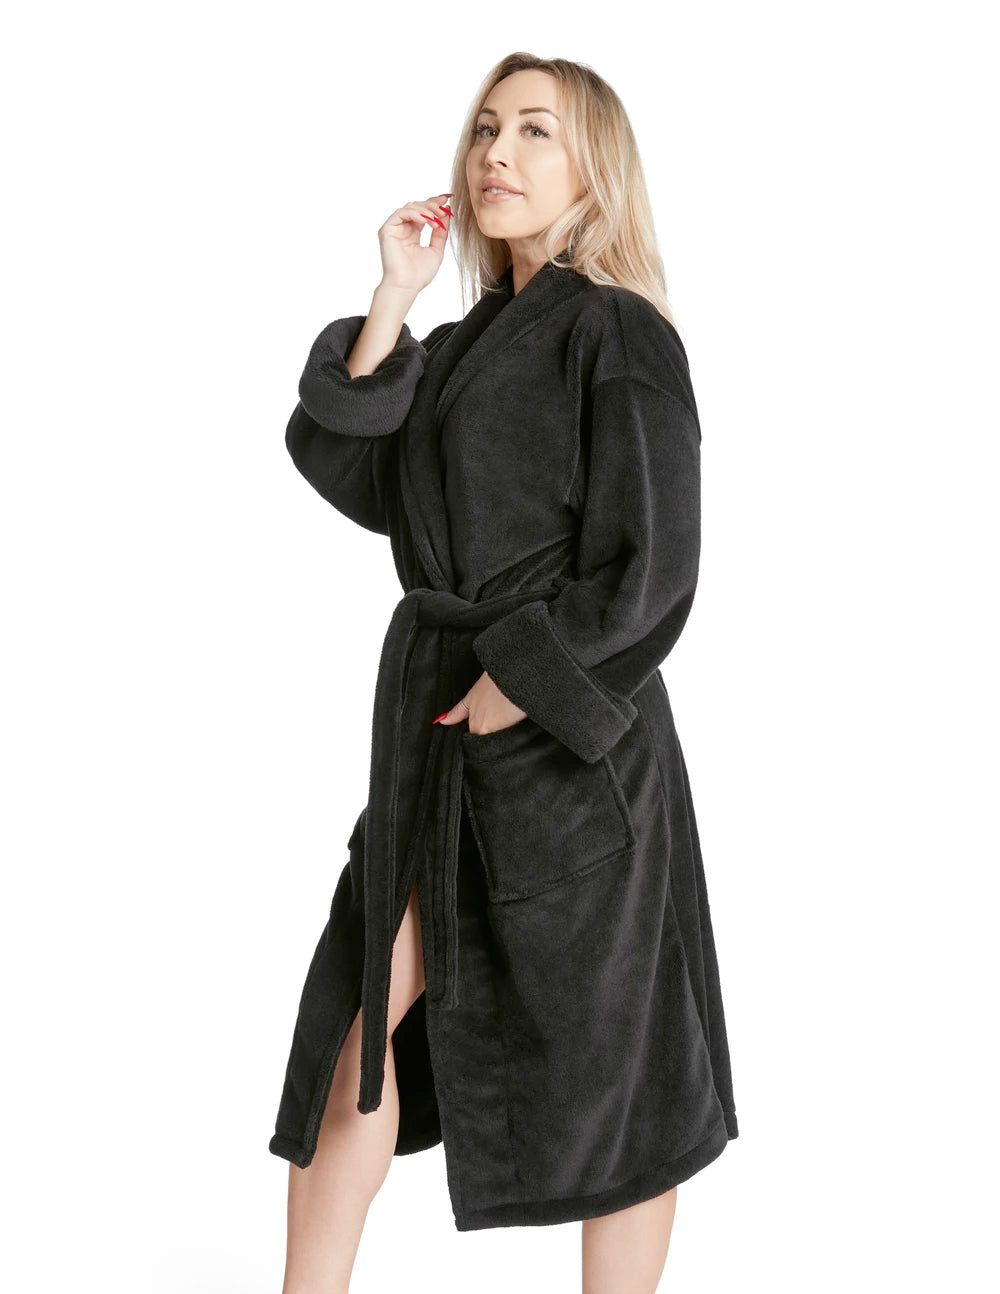 LUXE PLUSH ROBE - Lets Be Pretty